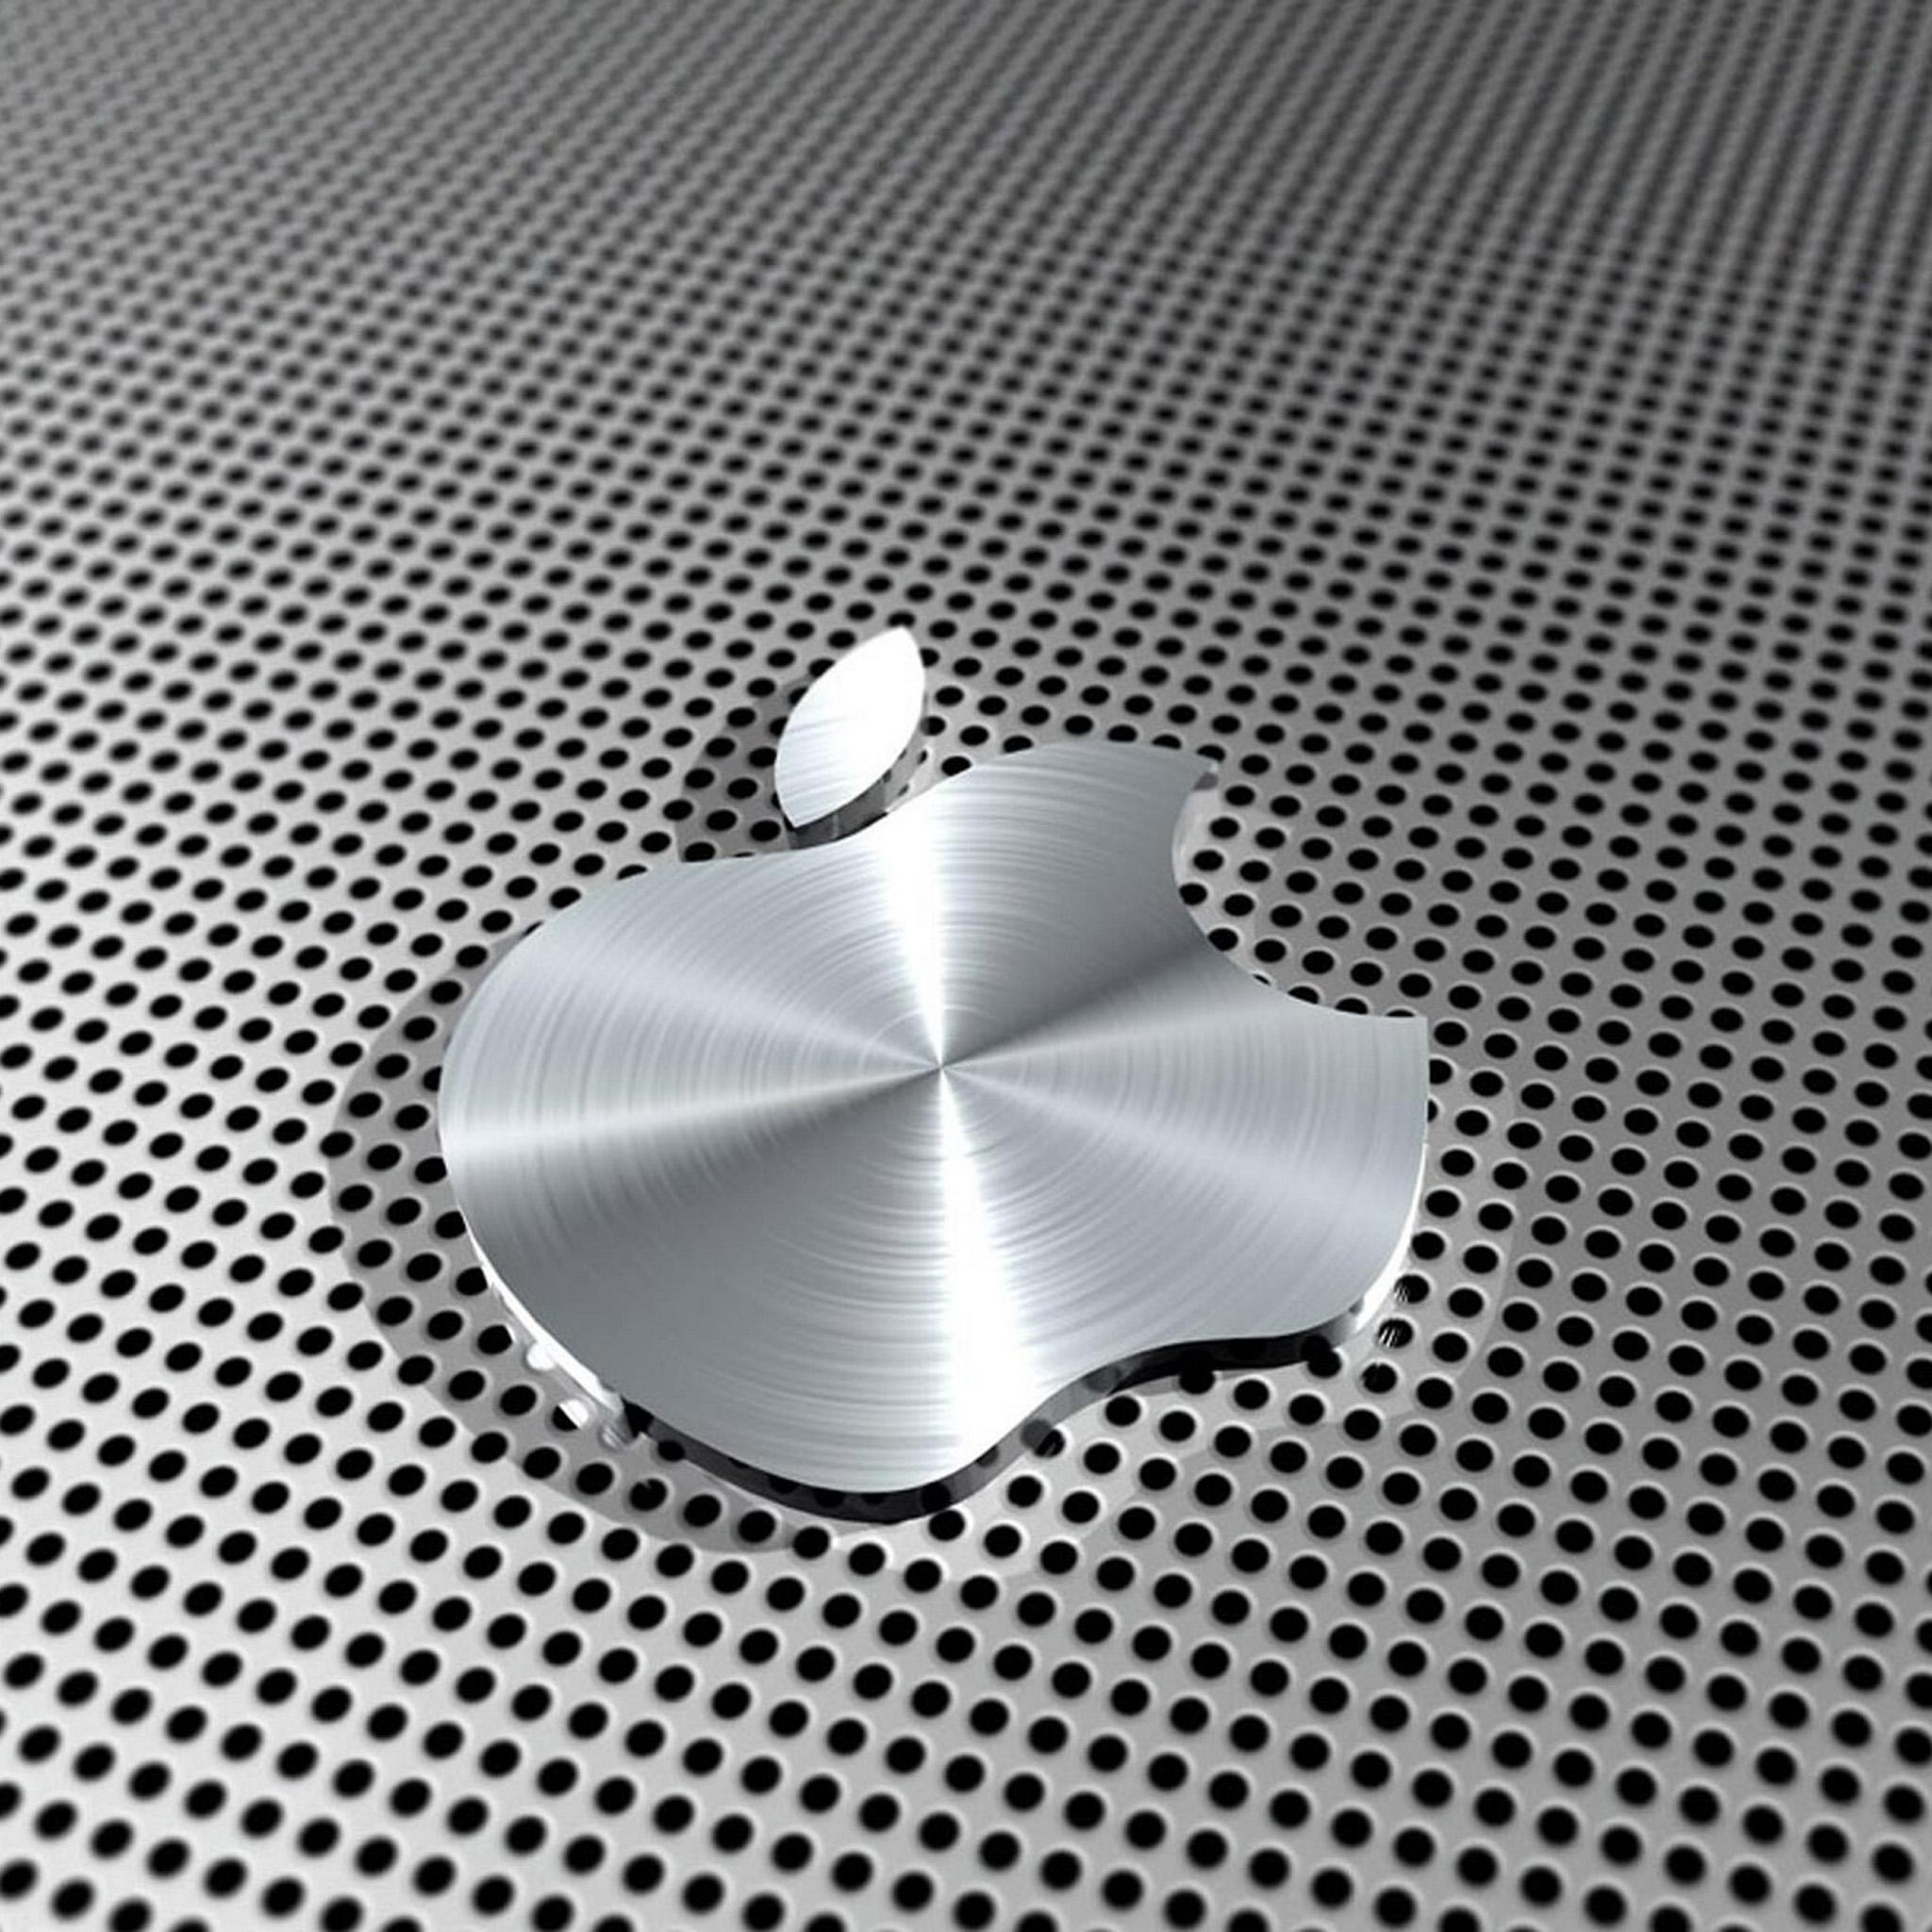 Ipad Retina Hd Wallpaper Apple Logo In Steel Ipad Ipad